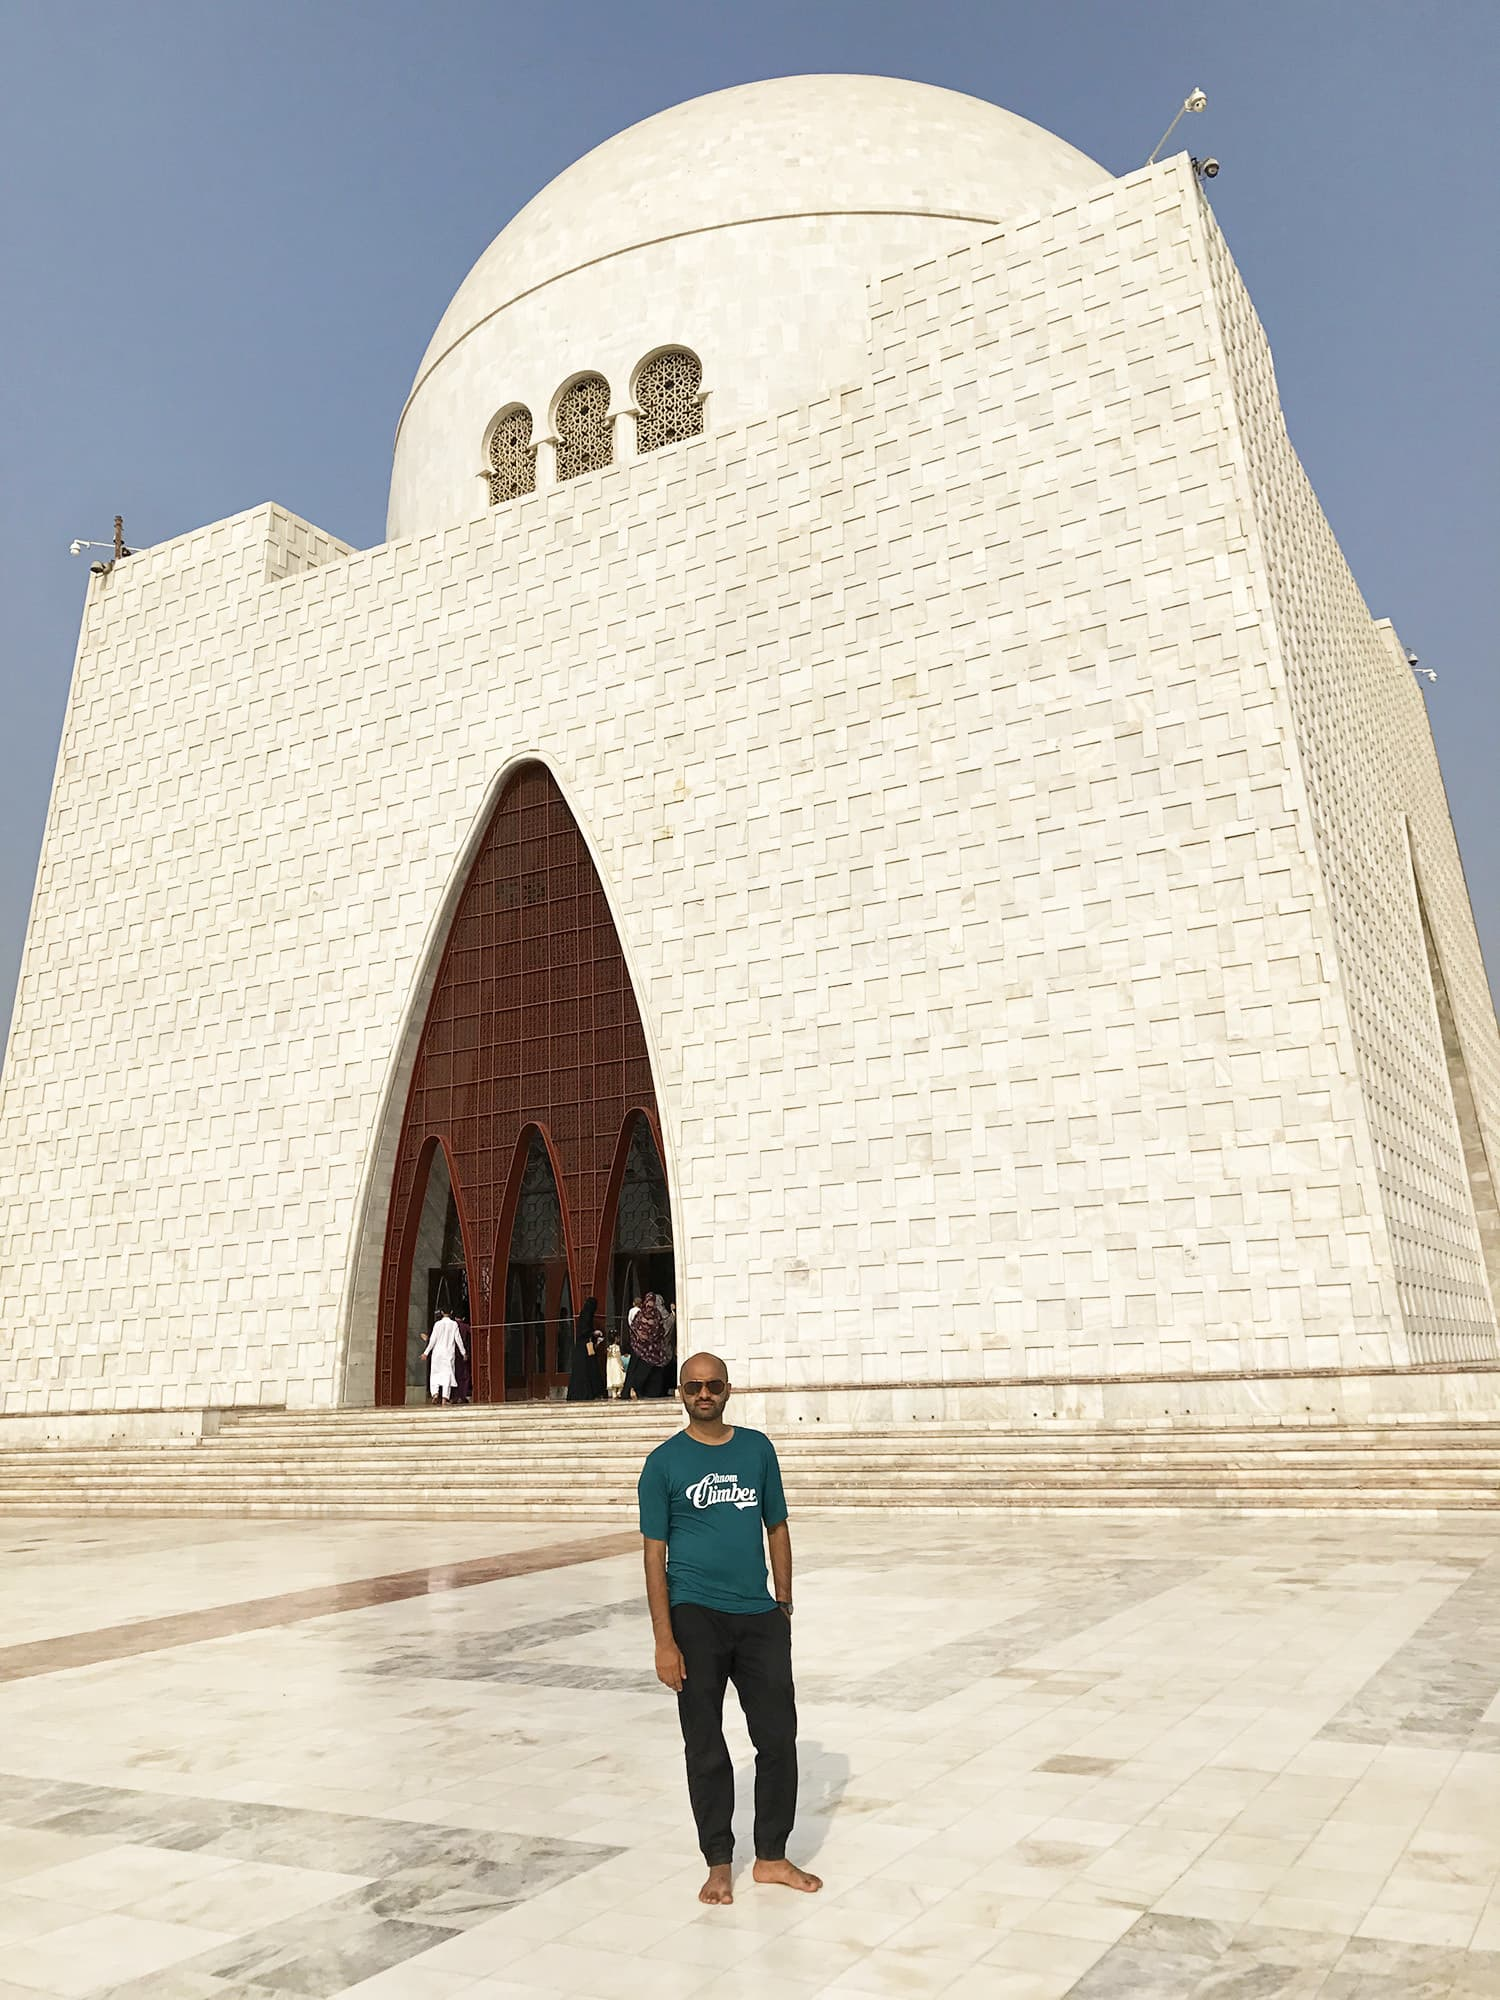 I even had the chance to visit the grand Mazar-e-Quaid in Karachi.